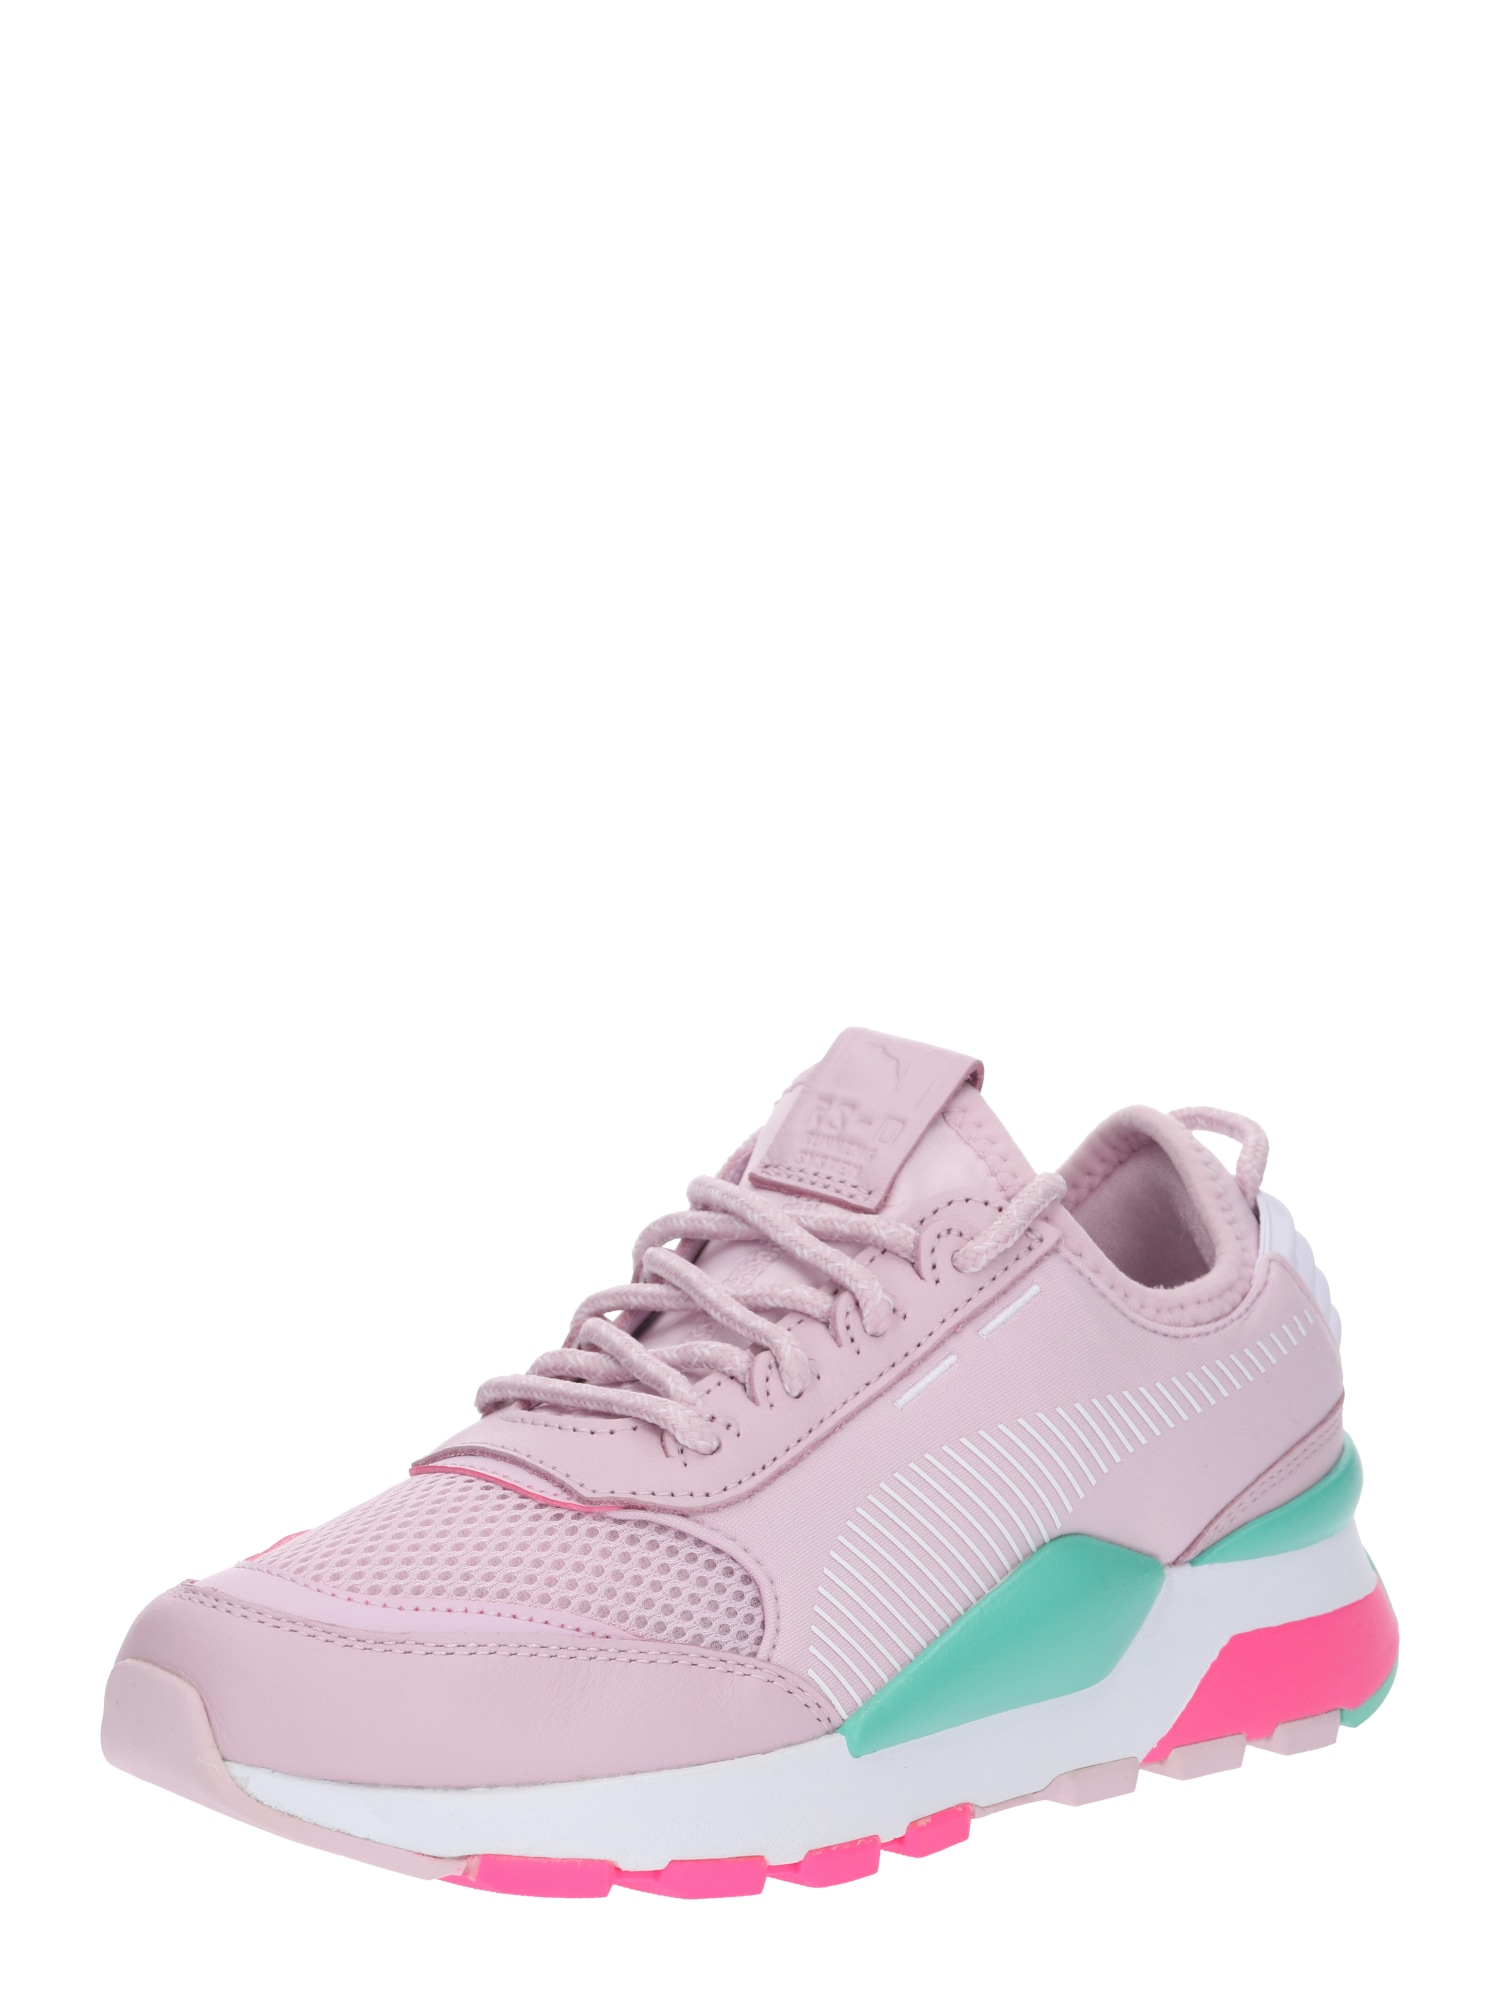 PUMA, Heren Sneakers laag 'RS-0 PLAY', turquoise / sering / neonroze